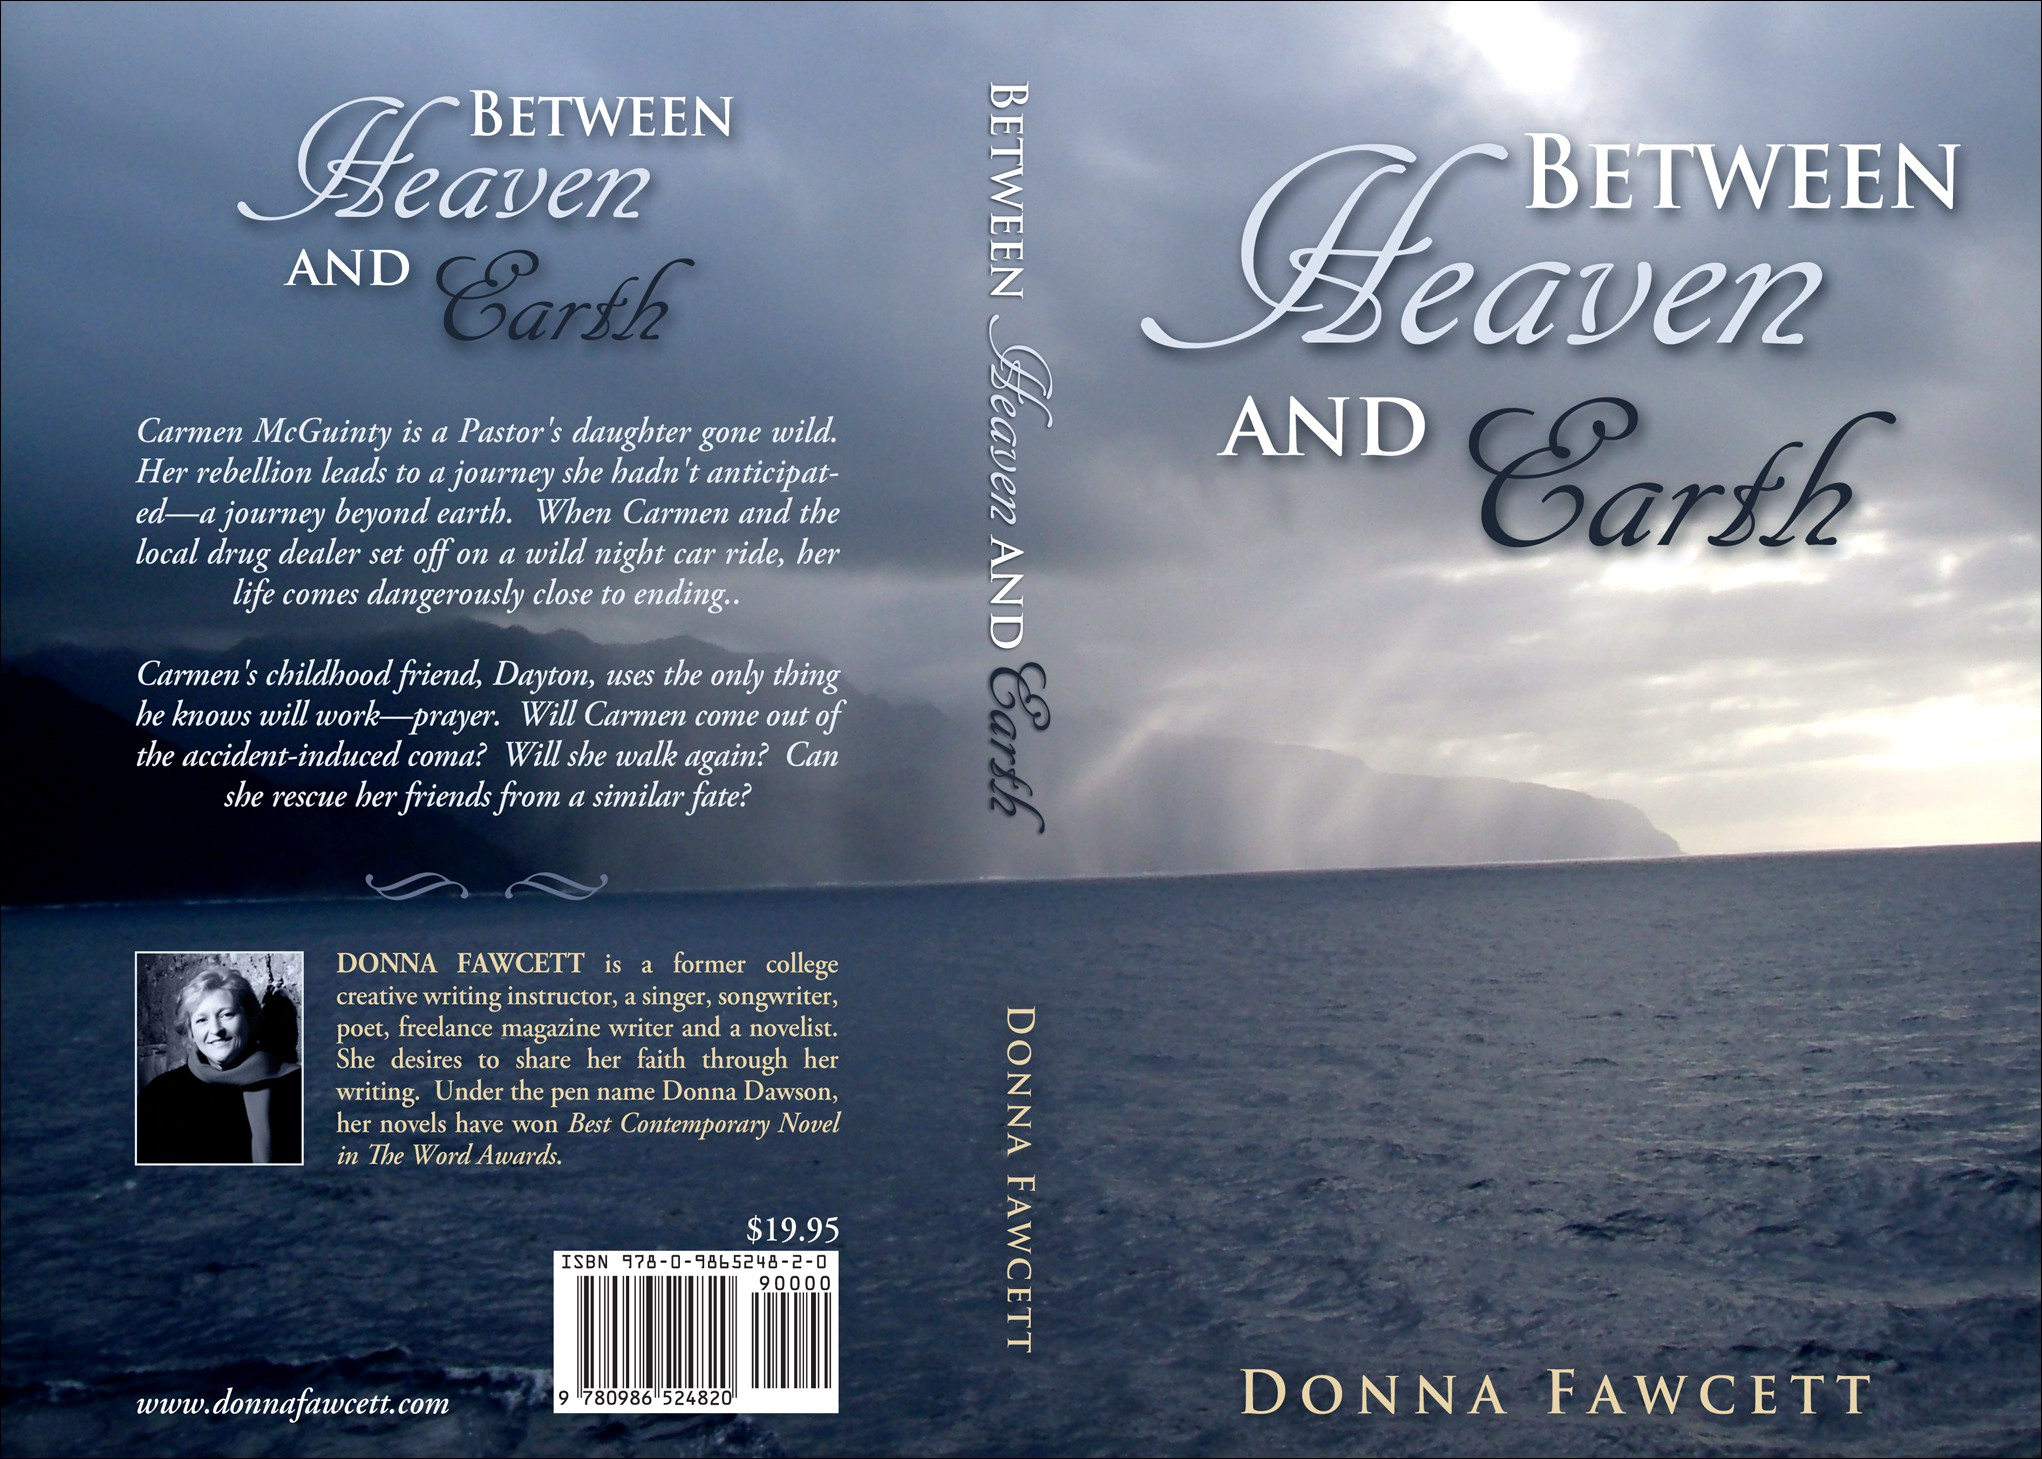 Between Heaven and Earth novel cover art contest